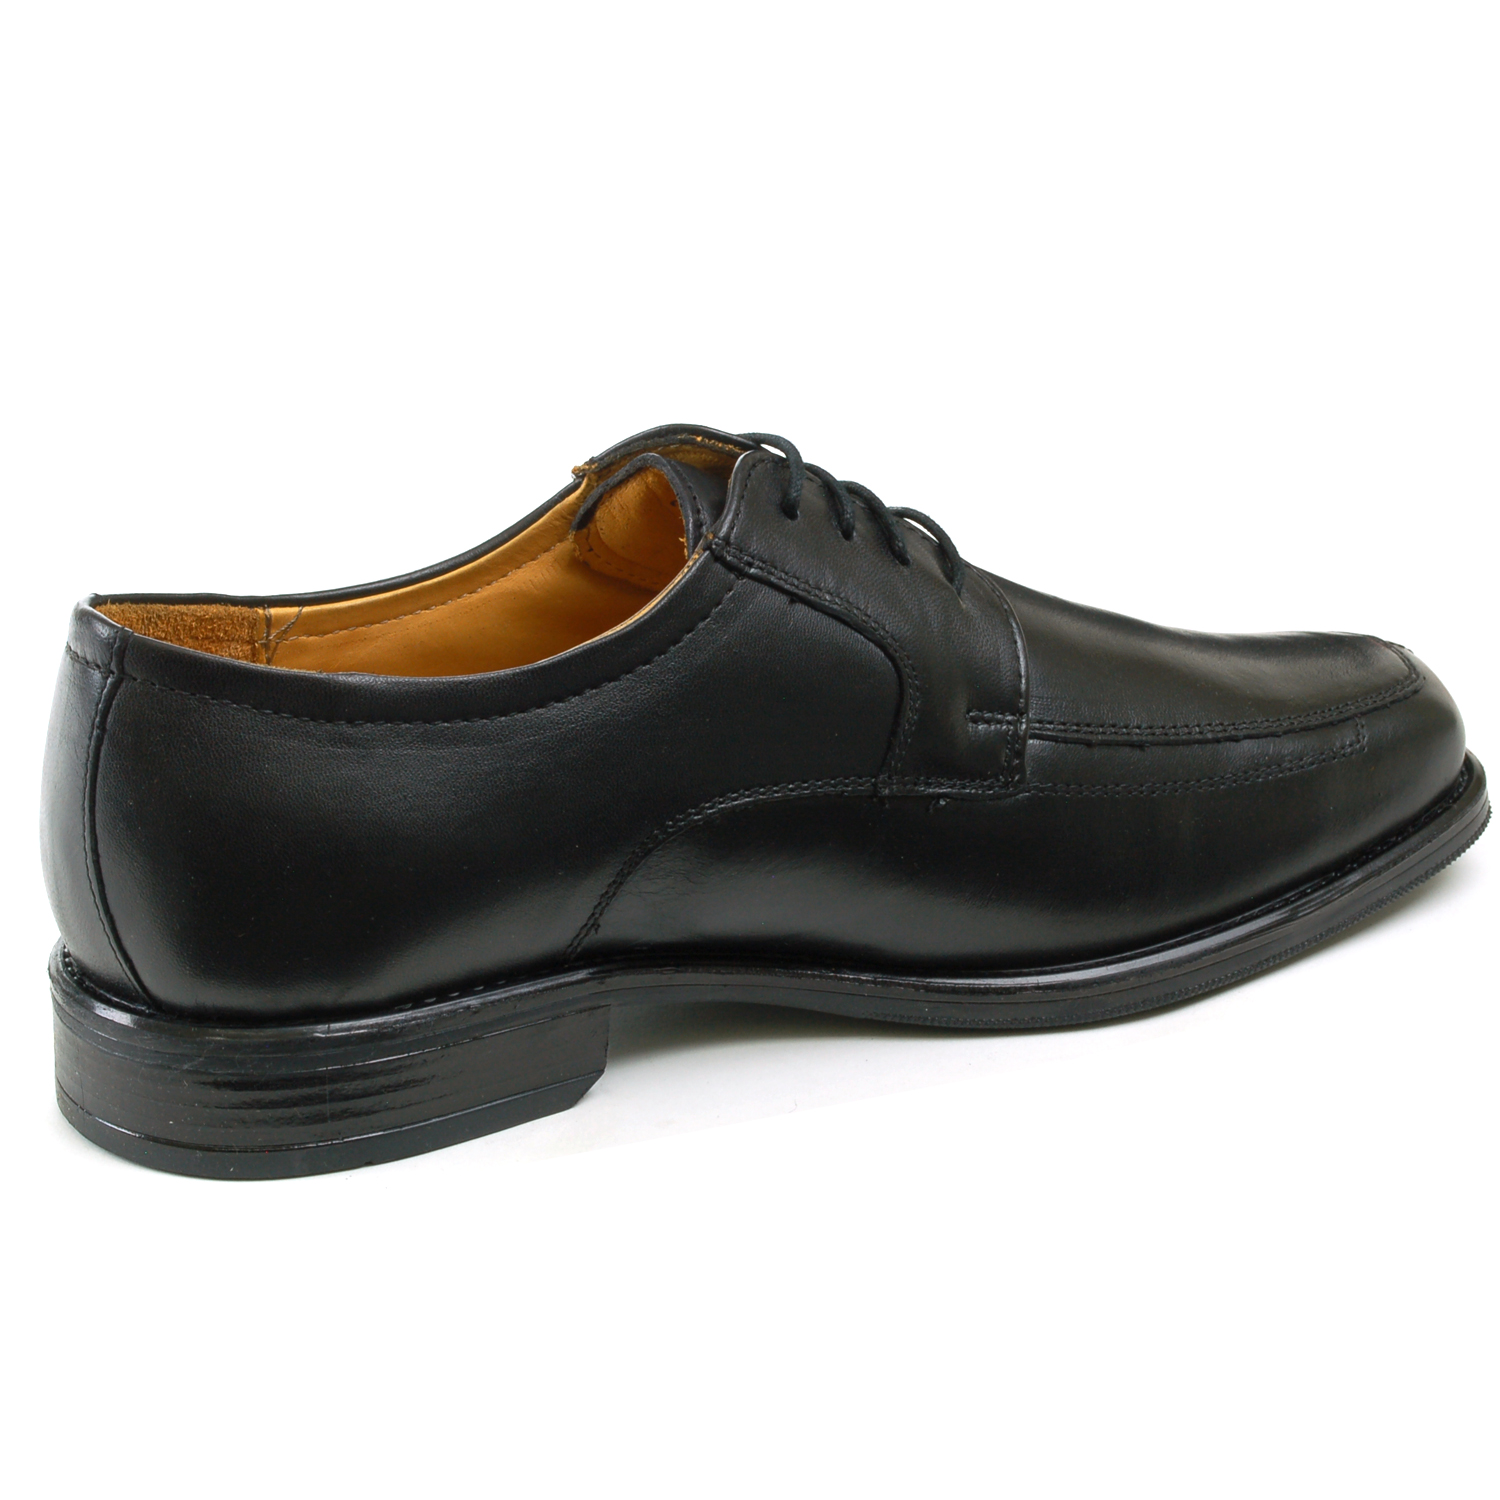 Mens-Lace-Up-Oxfords-Dress-Shoes-Genuine-Leather-Moc-Toe-Giorgio-Brutini-Padded thumbnail 12